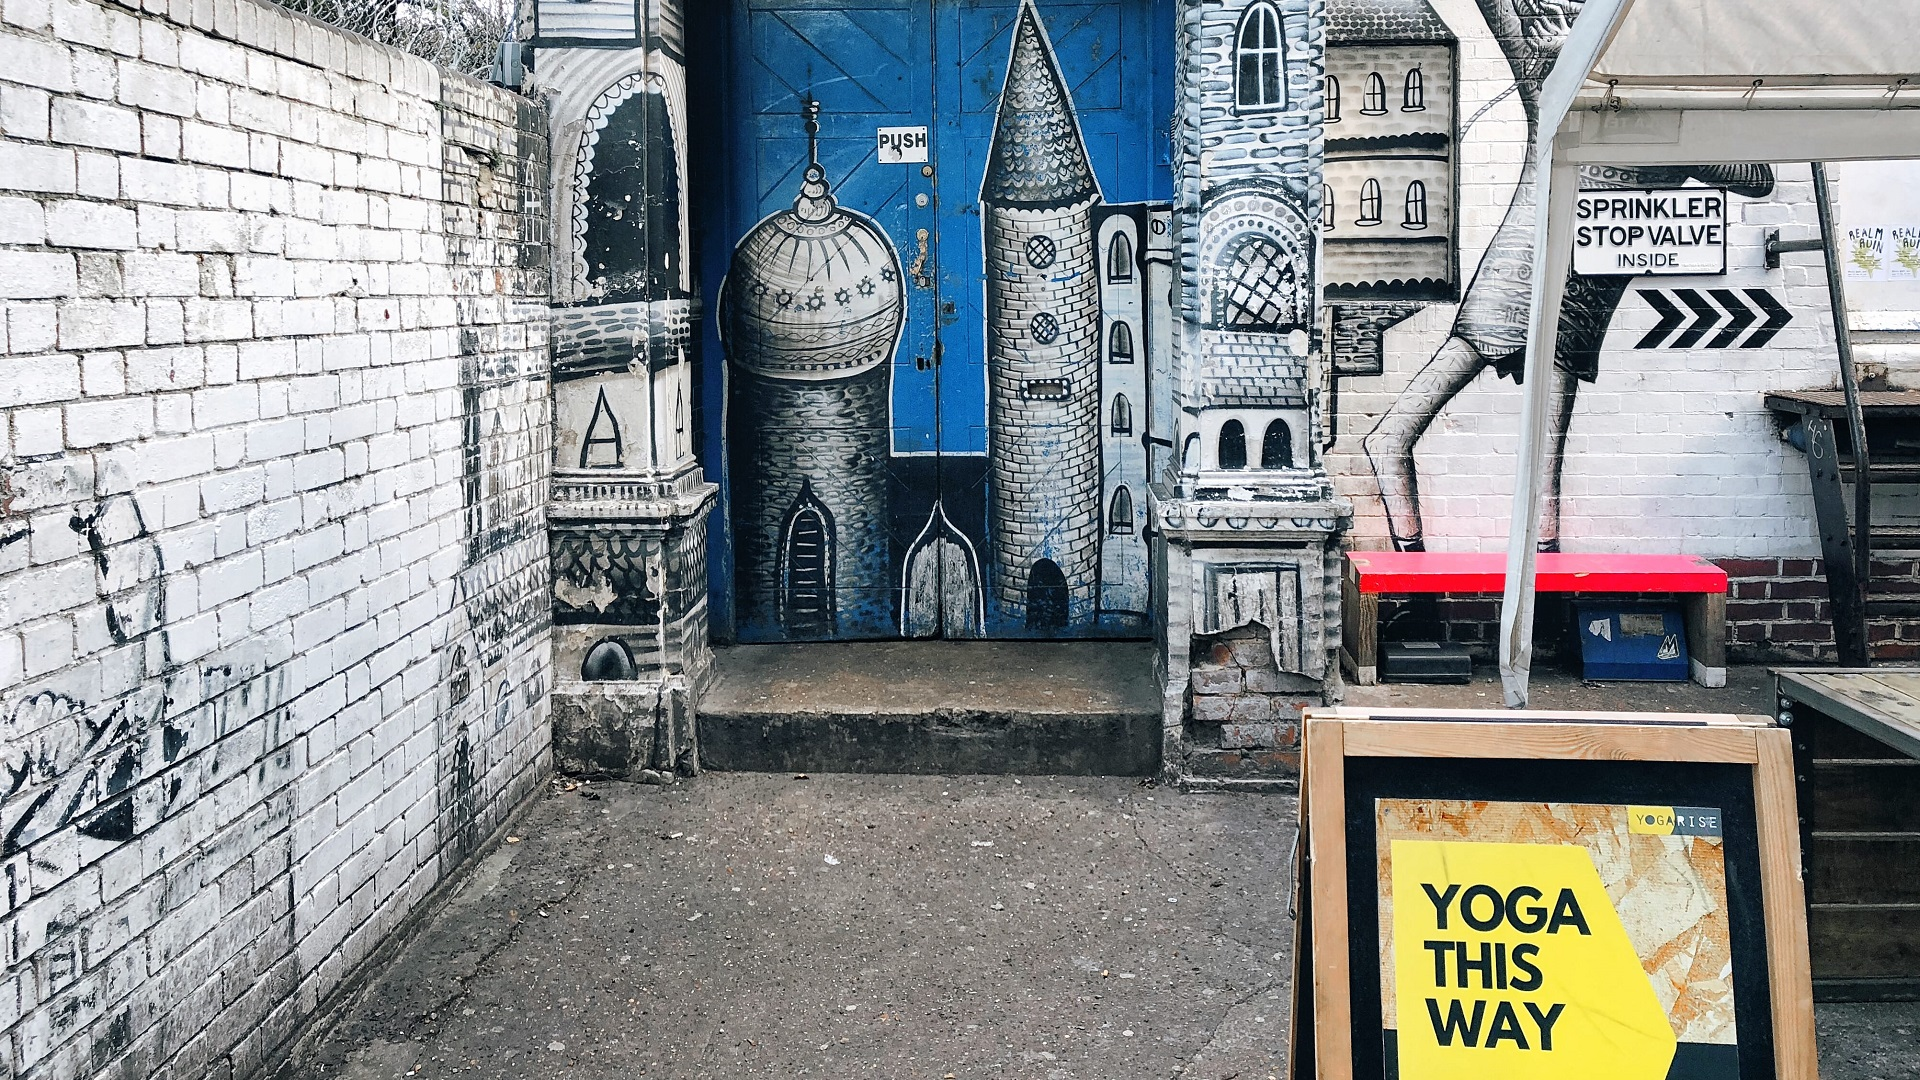 Street art of a castle on a blue door way behind a yellow sign reading Yoga this way